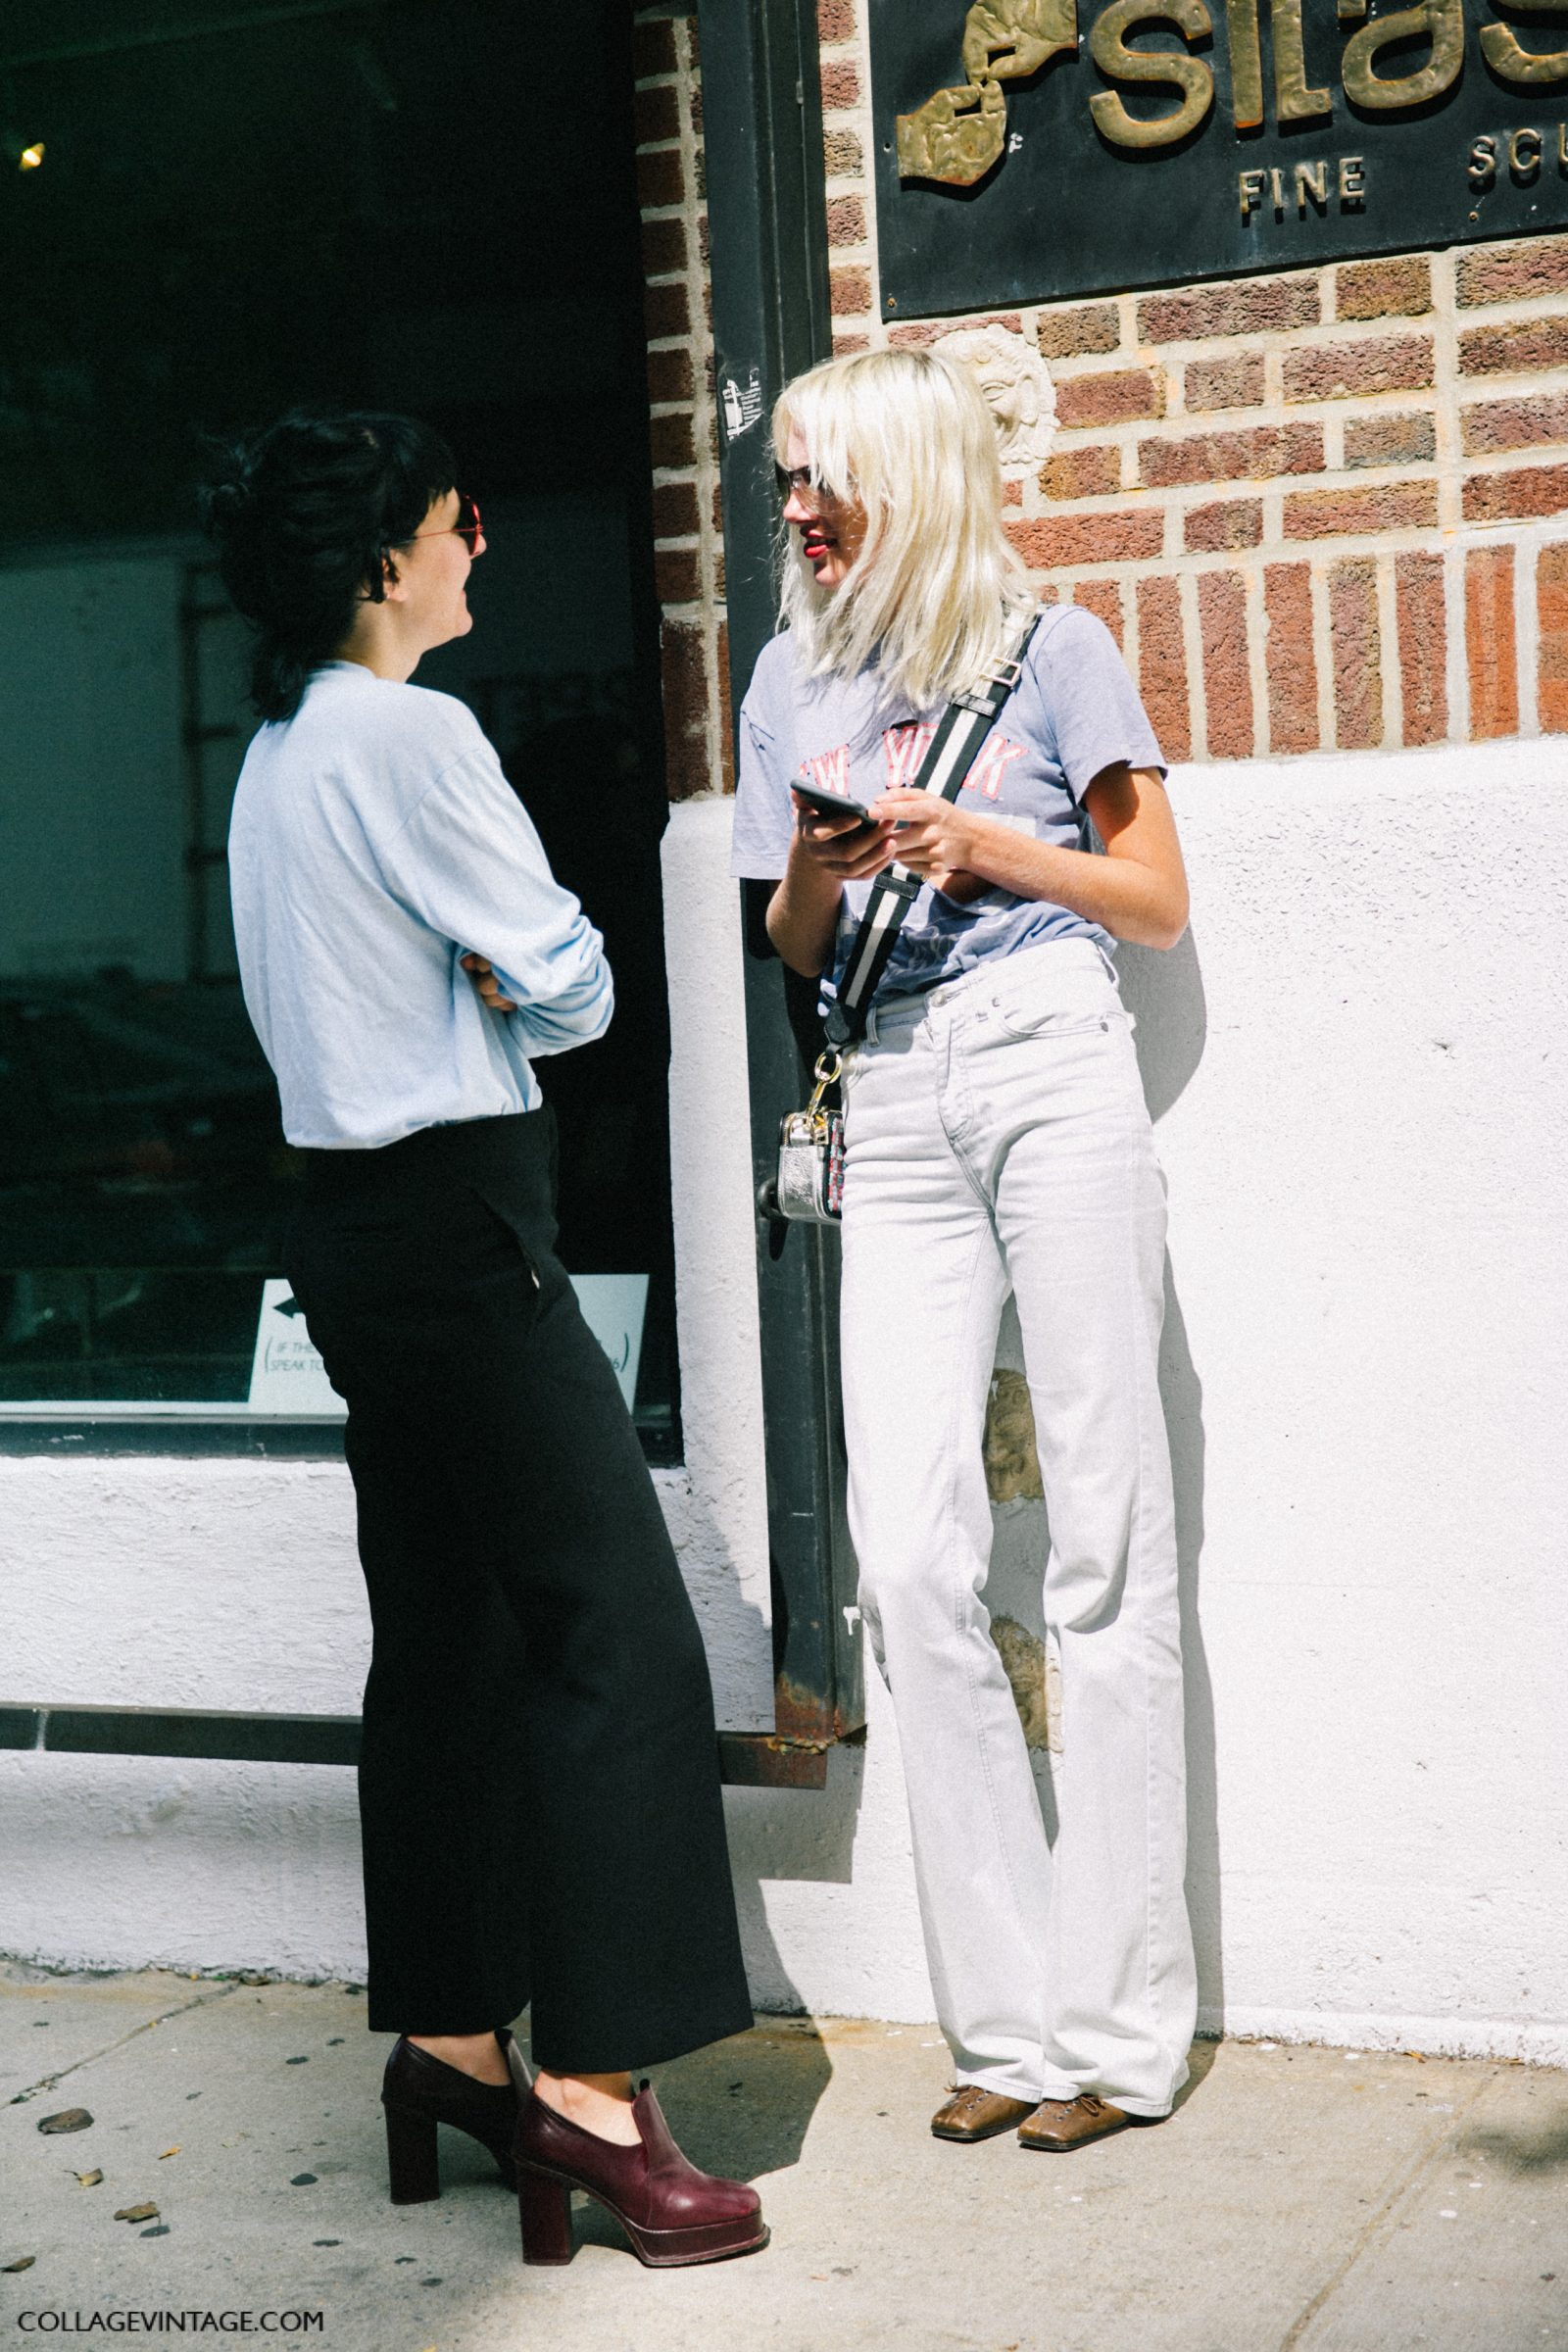 nyfw-new_york_fashion_week_ss17-street_style-outfits-collage_vintage-vintage-phillip_lim-the-row-proenza_schouler-rossie_aussolin-249